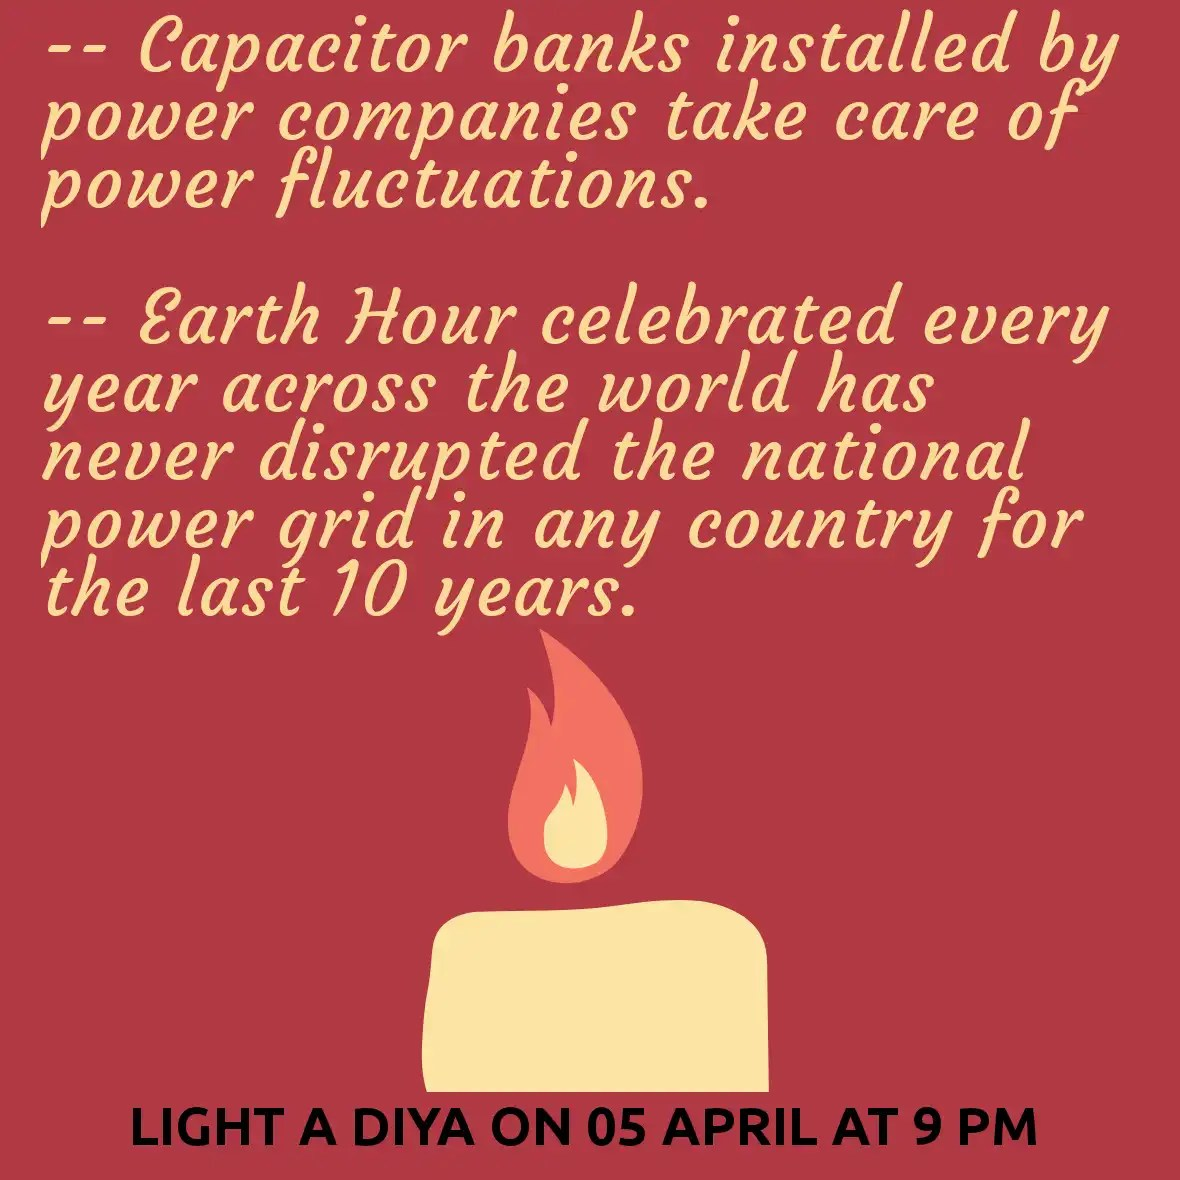 Two reasons why the power grid will not fail on April 05, 2020 at 9 pm